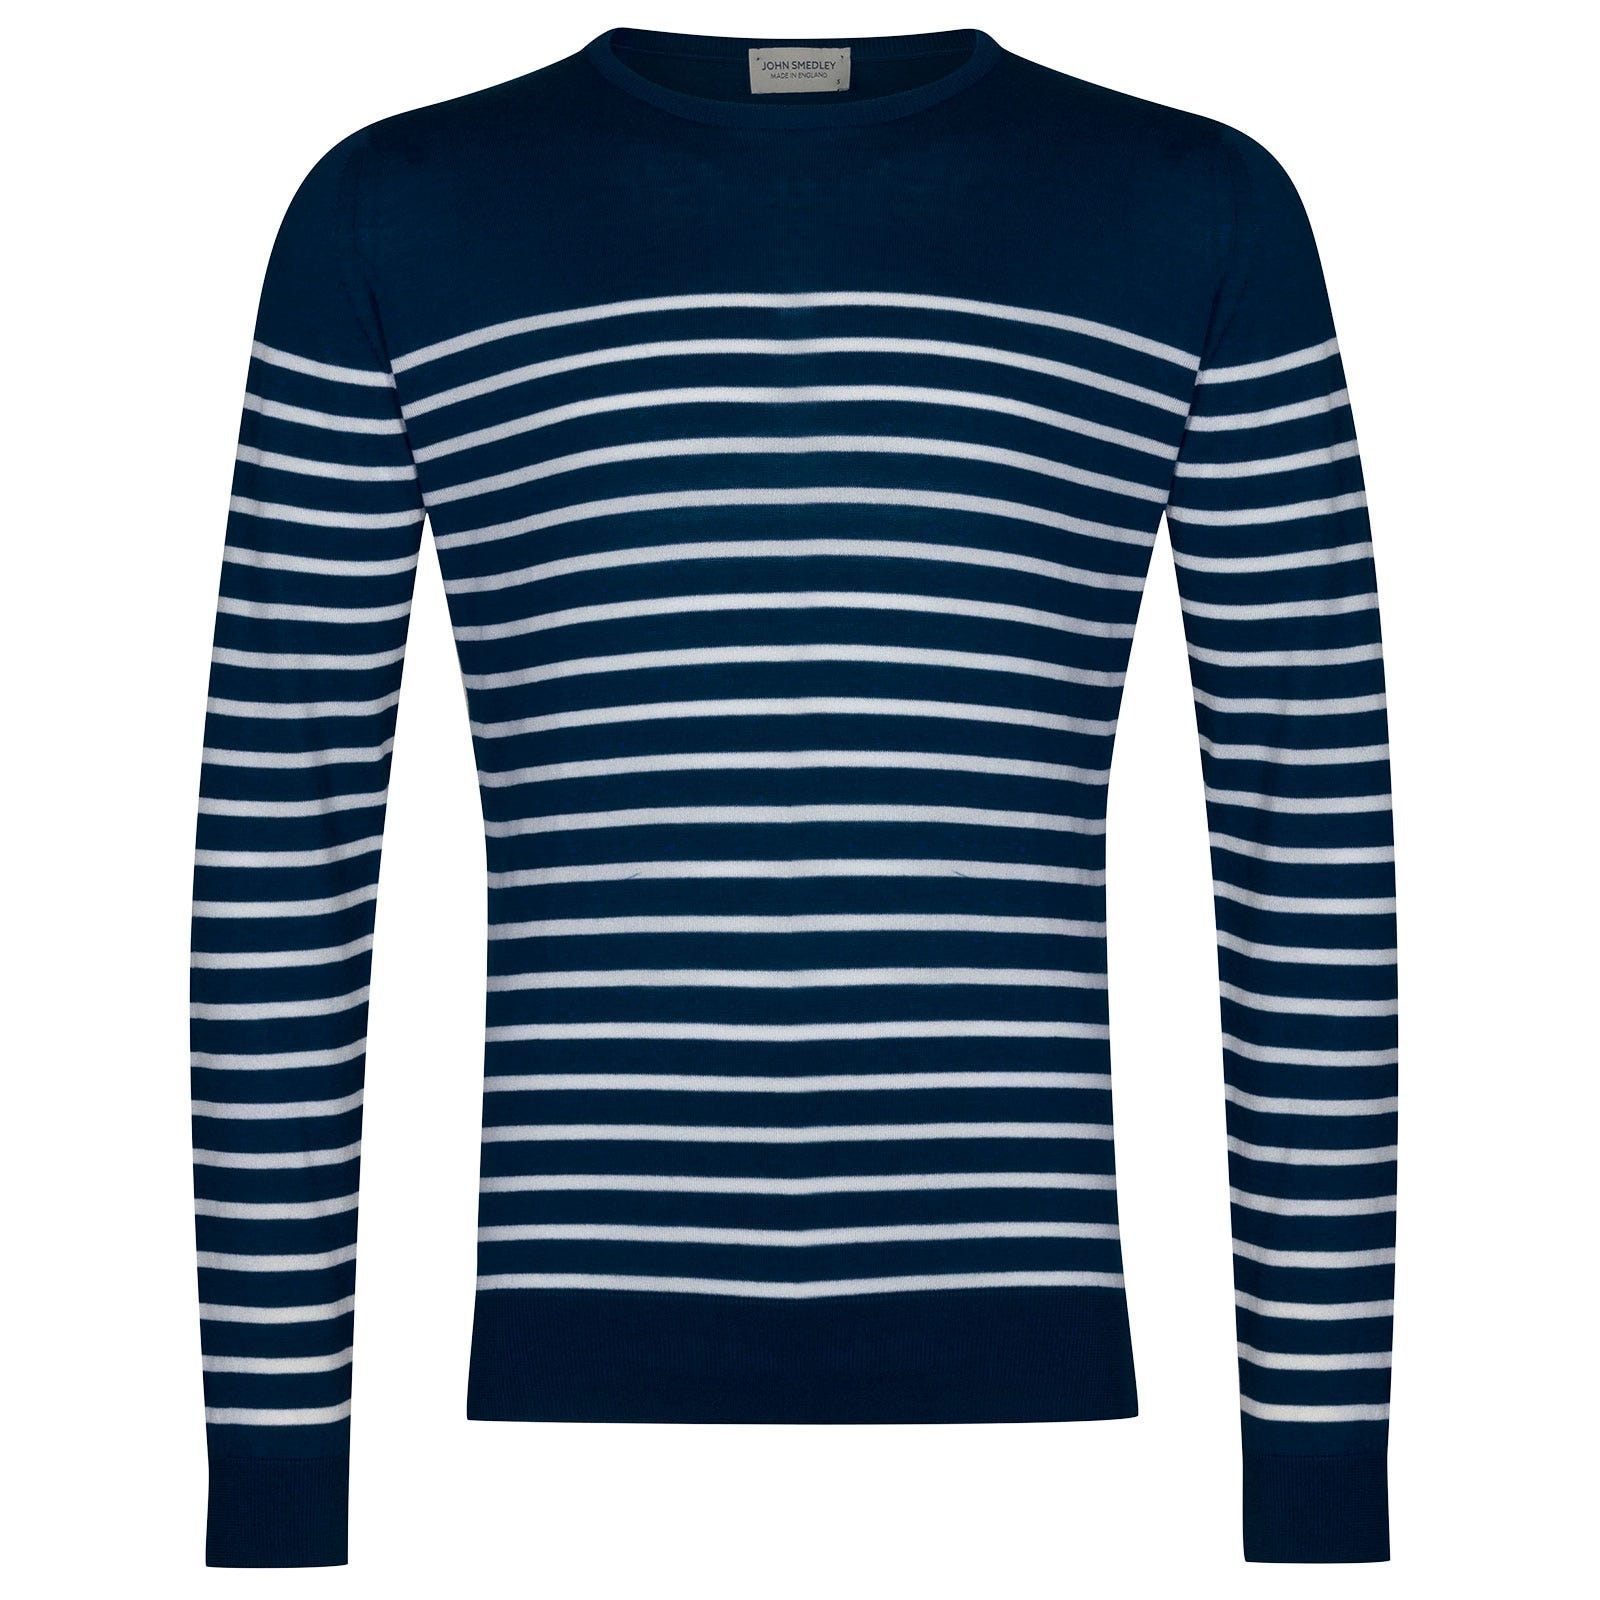 John Smedley Redfree Sea Island Cotton Pullover in Indigo-M